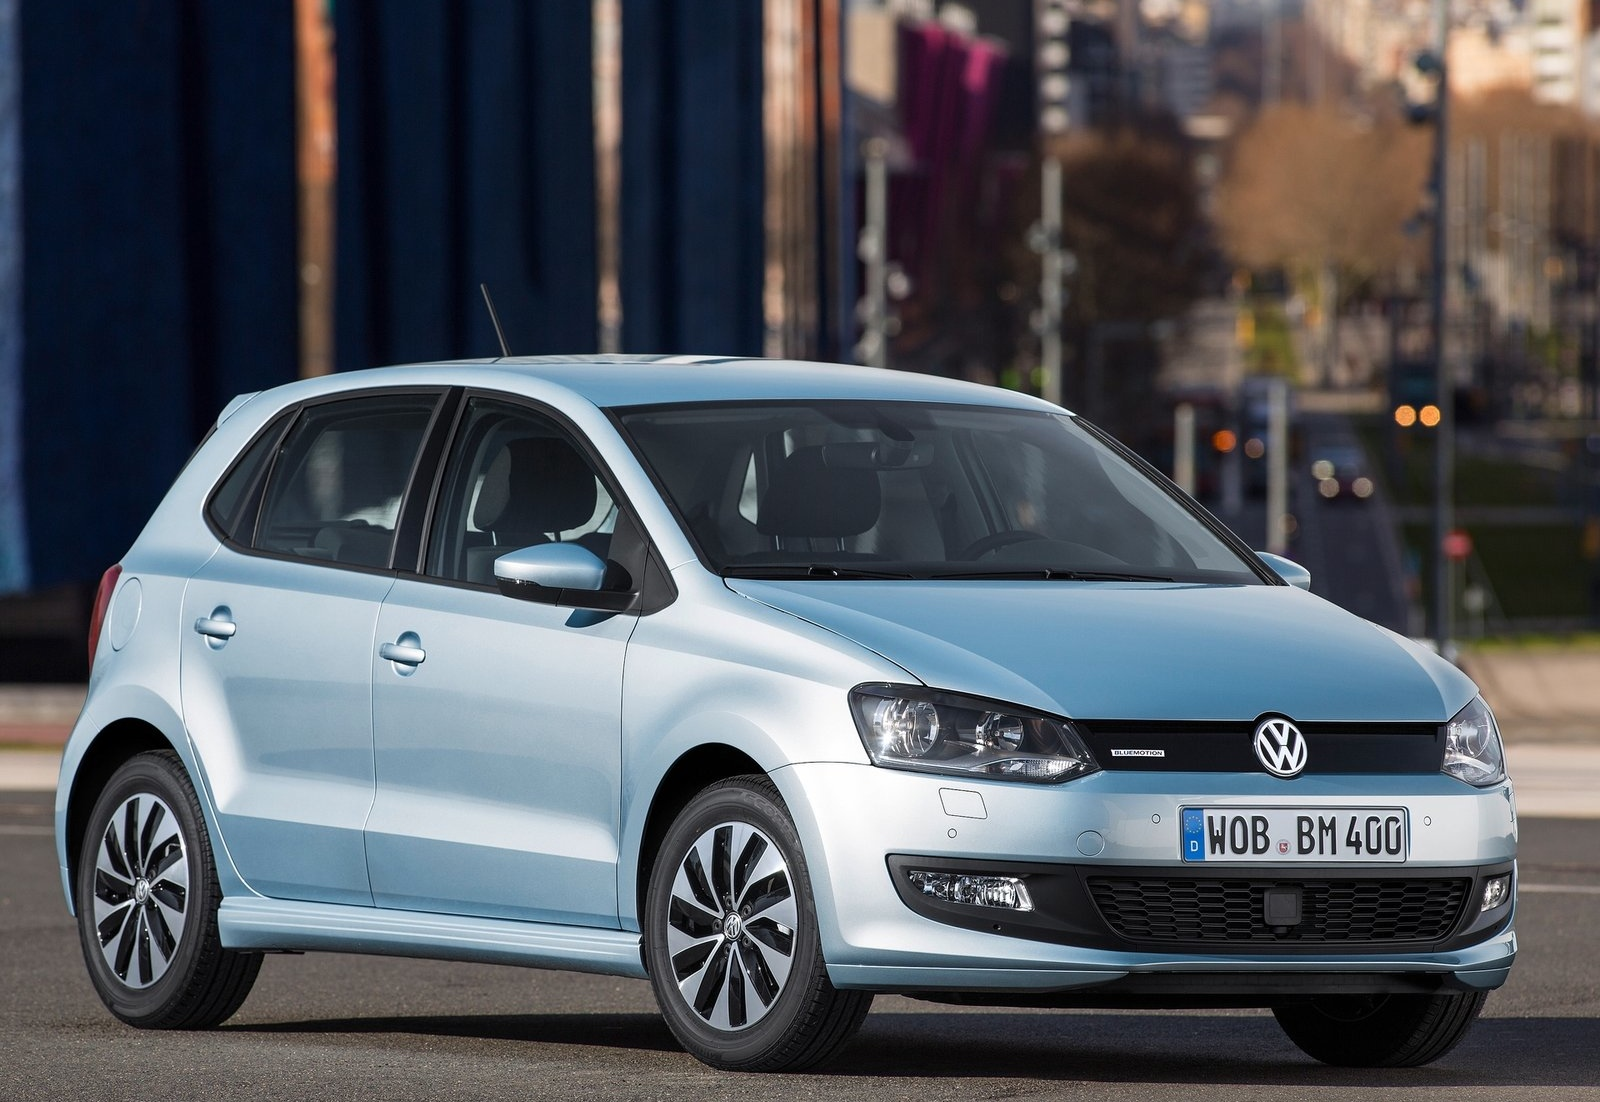 VW polo vw : VW Launches 2015 Polo TSI BlueMotion With 1-Liter Turbo Engine ...